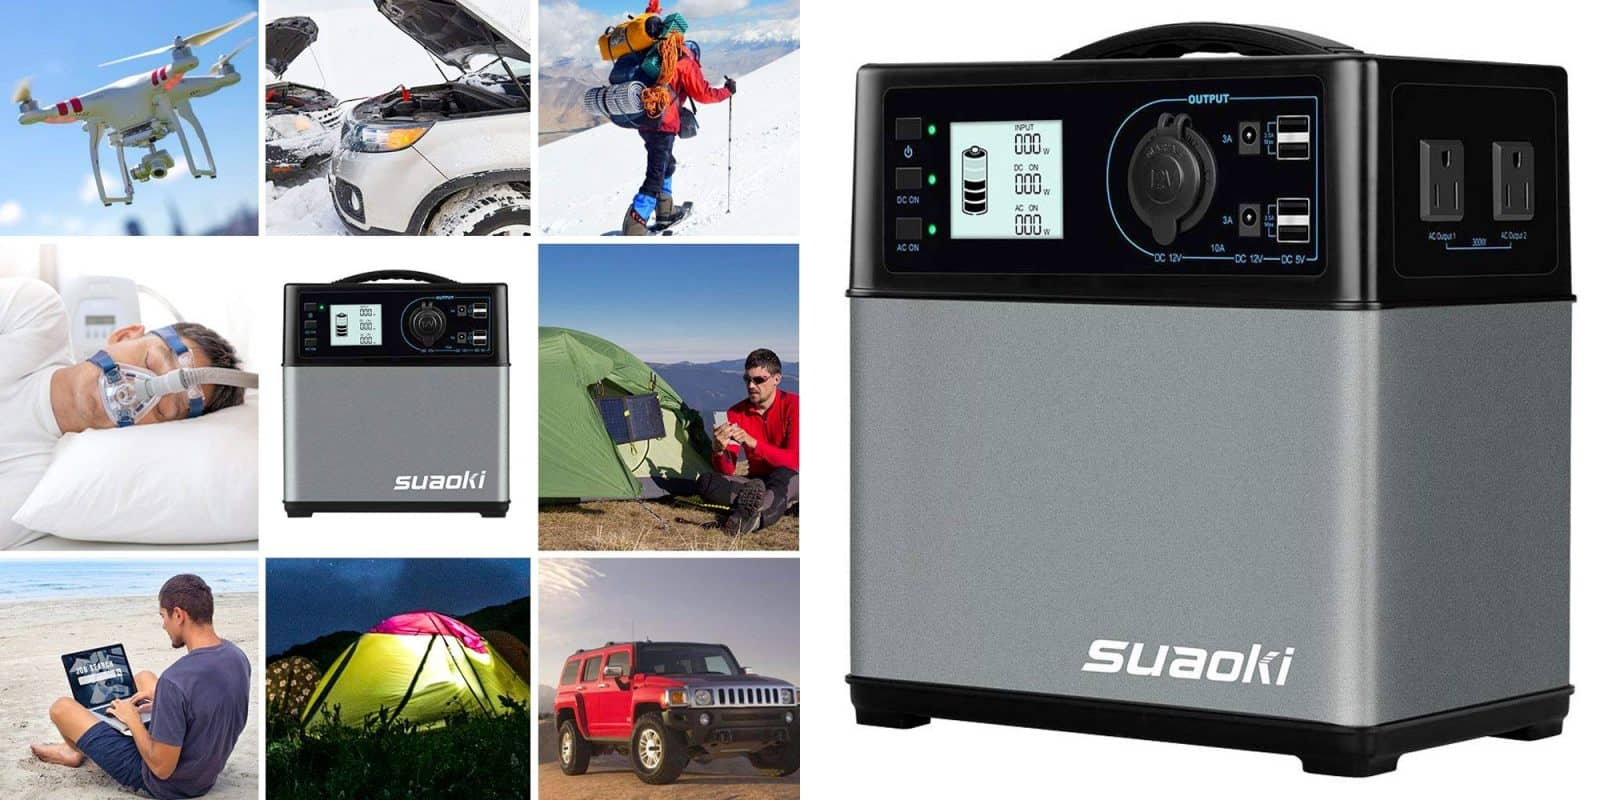 Get Power Even While Off The Grid with a Discounted SUAOKI Power Station